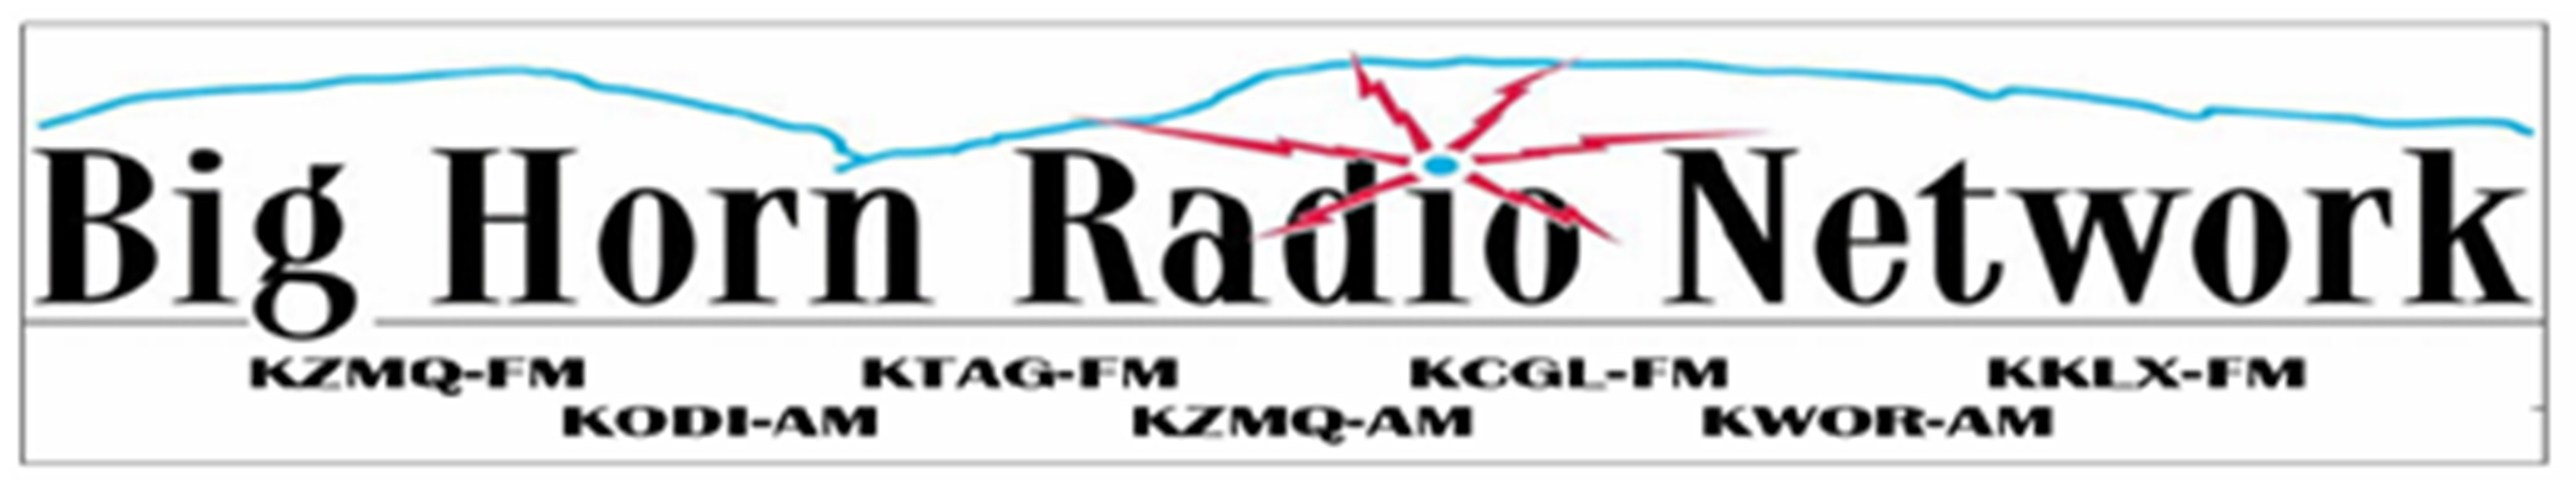 Big_Horn_Radio_Network_Color.jpg